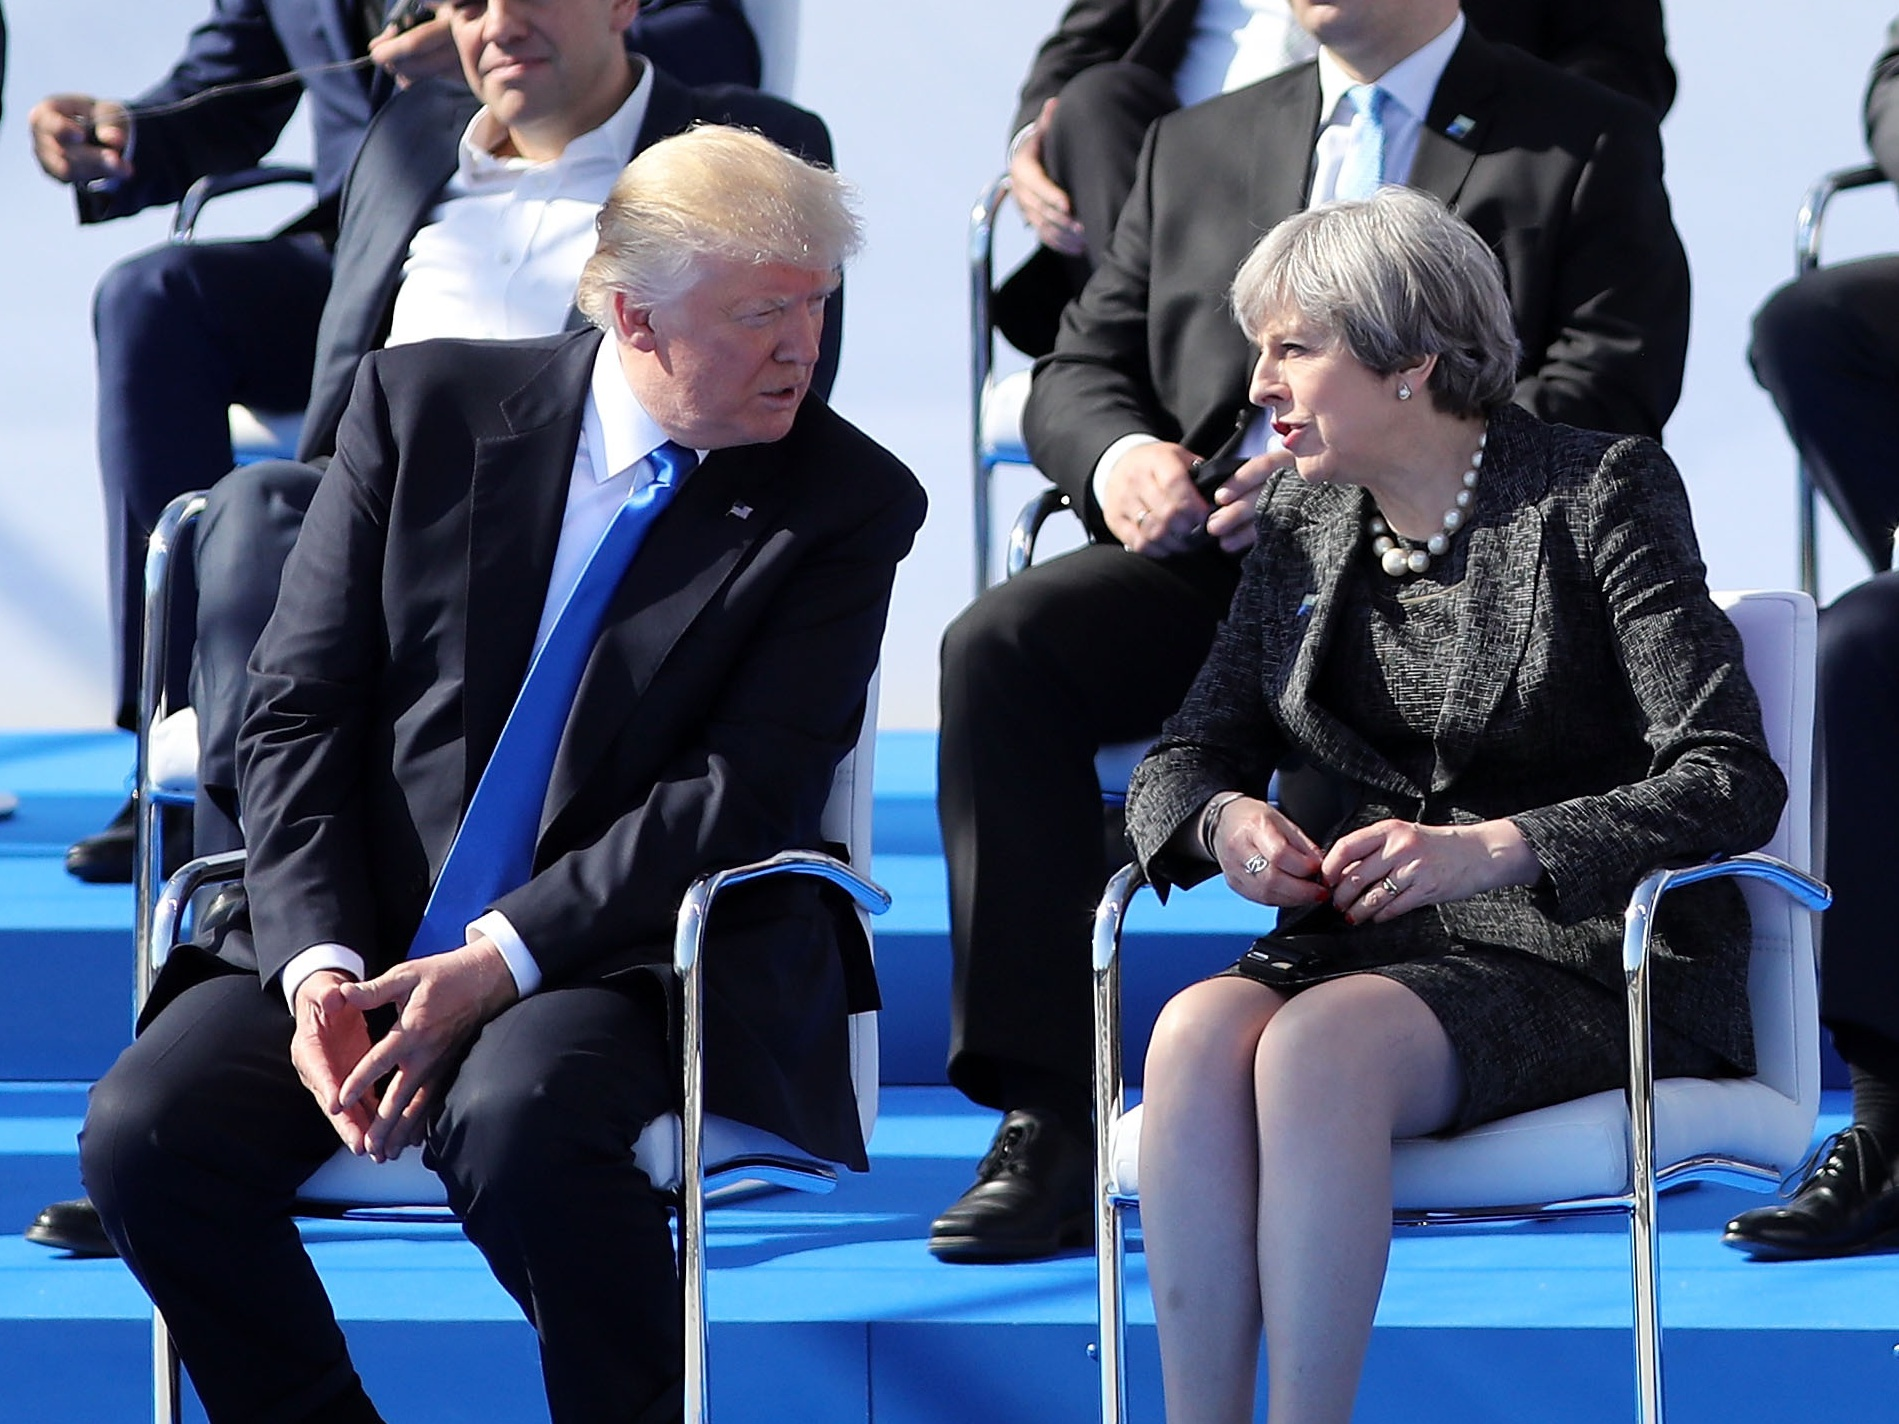 Donald Trump and Theresa May were seated together at the Nato summit in Brussels (Dan Kitwood/PA)